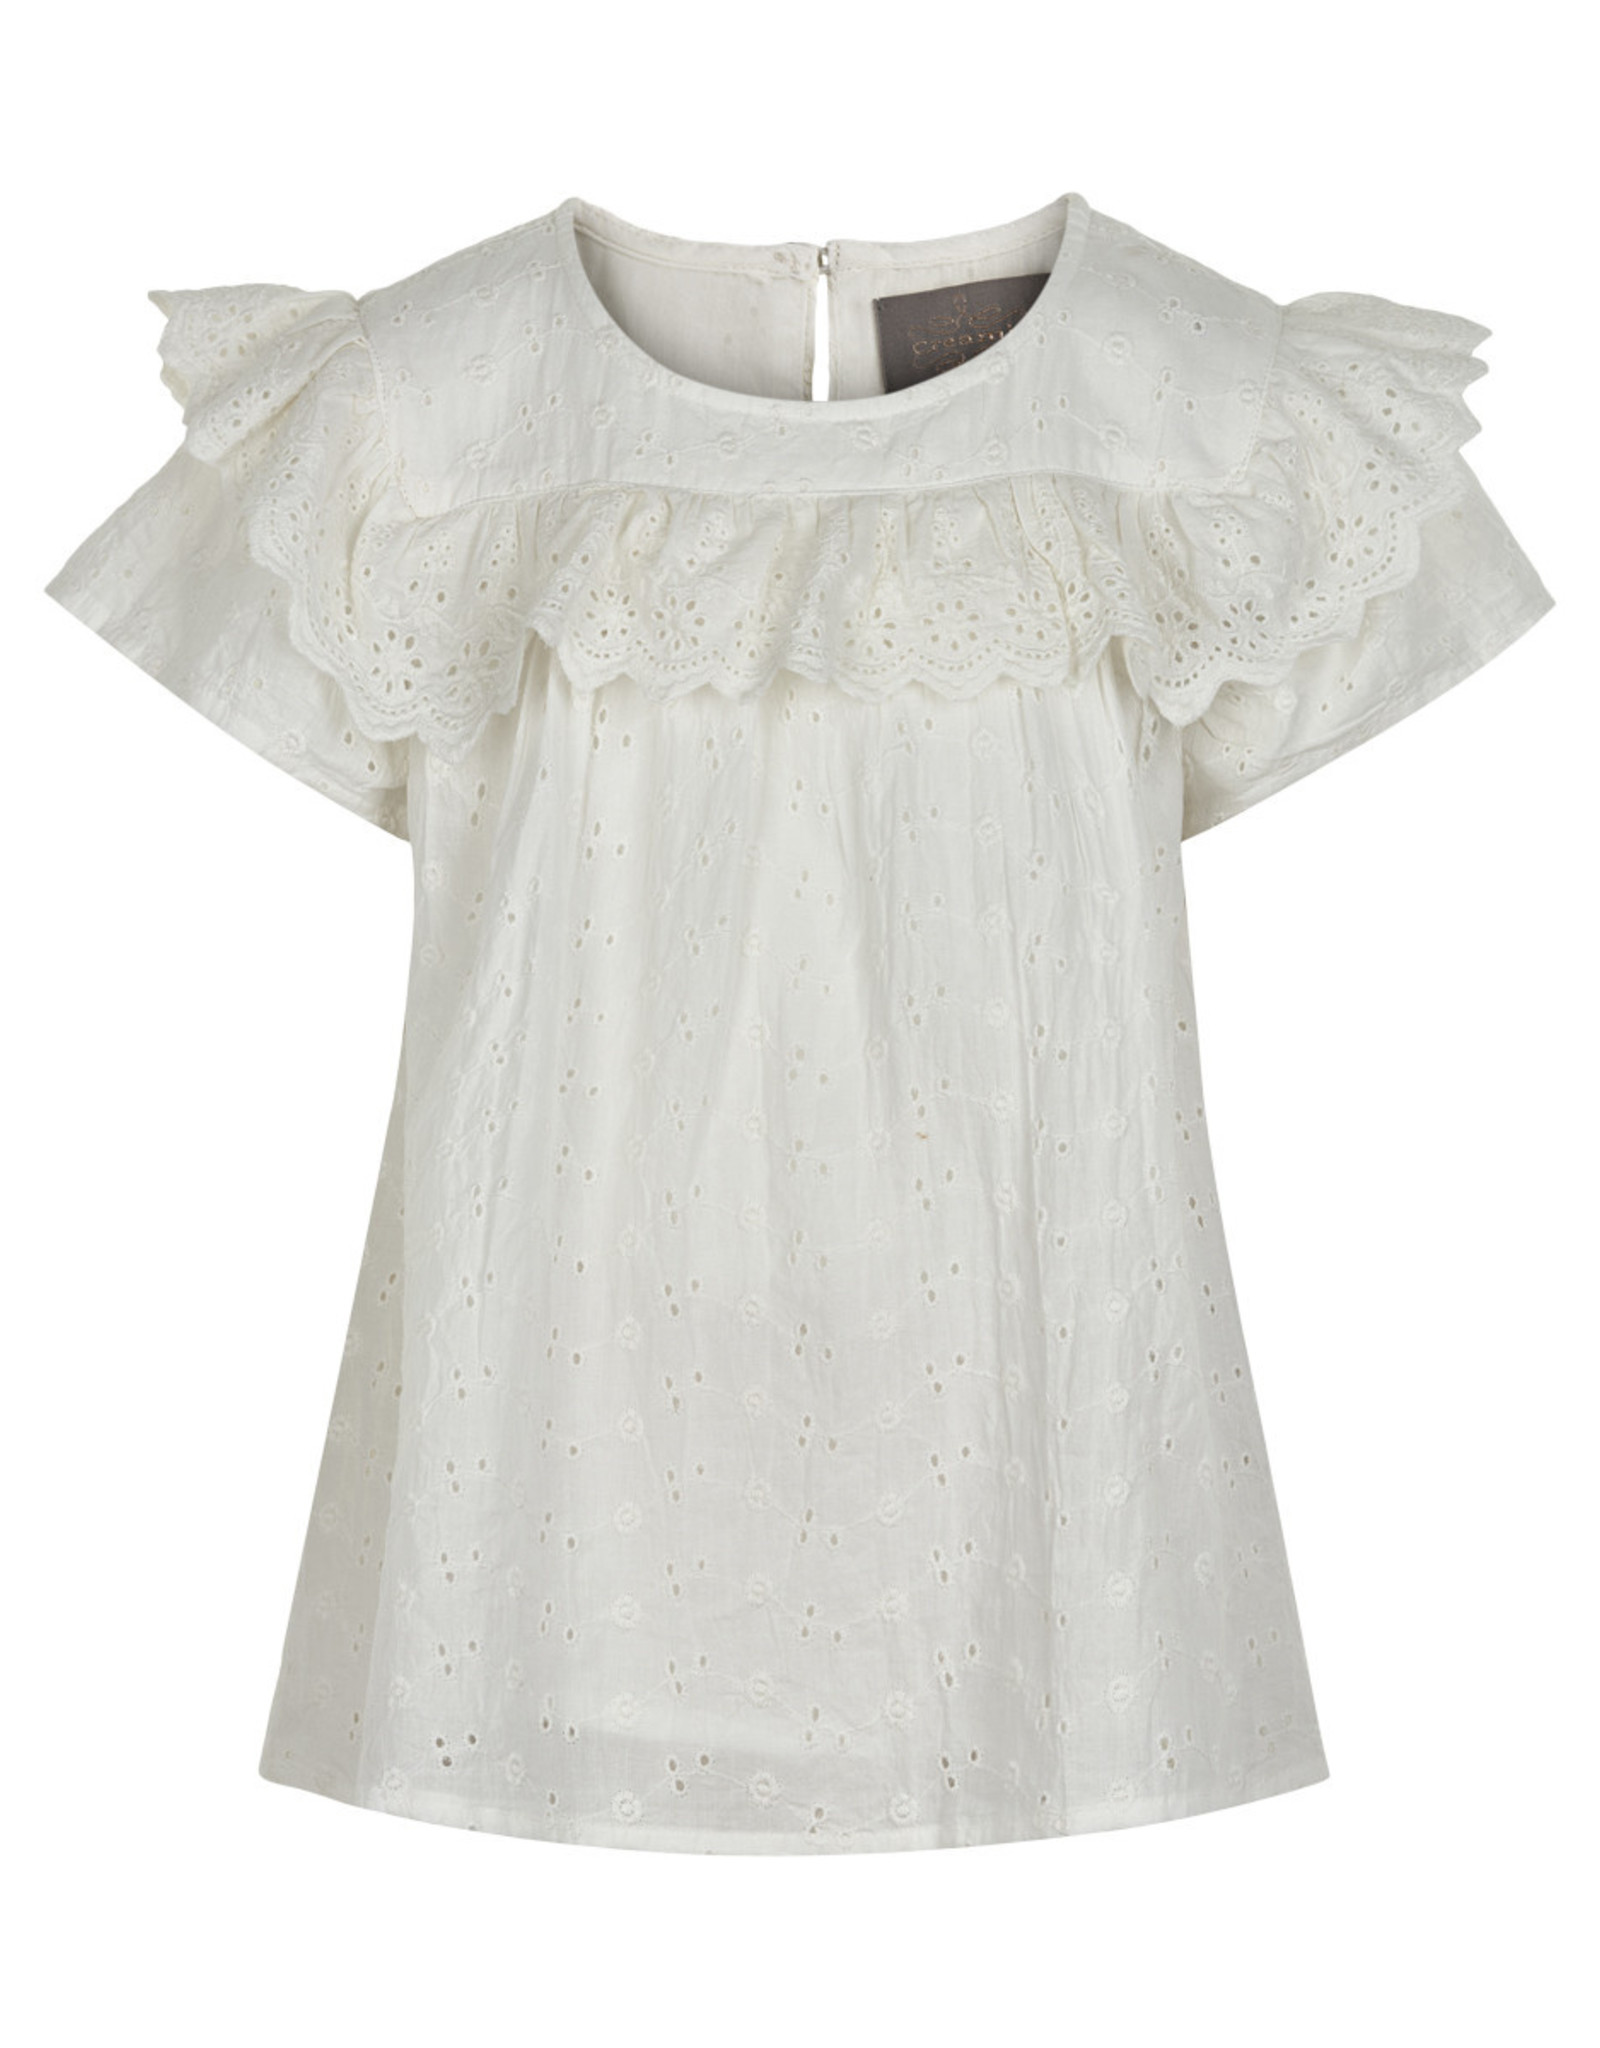 Creamie SP21 G Cream Embroidered Blouse